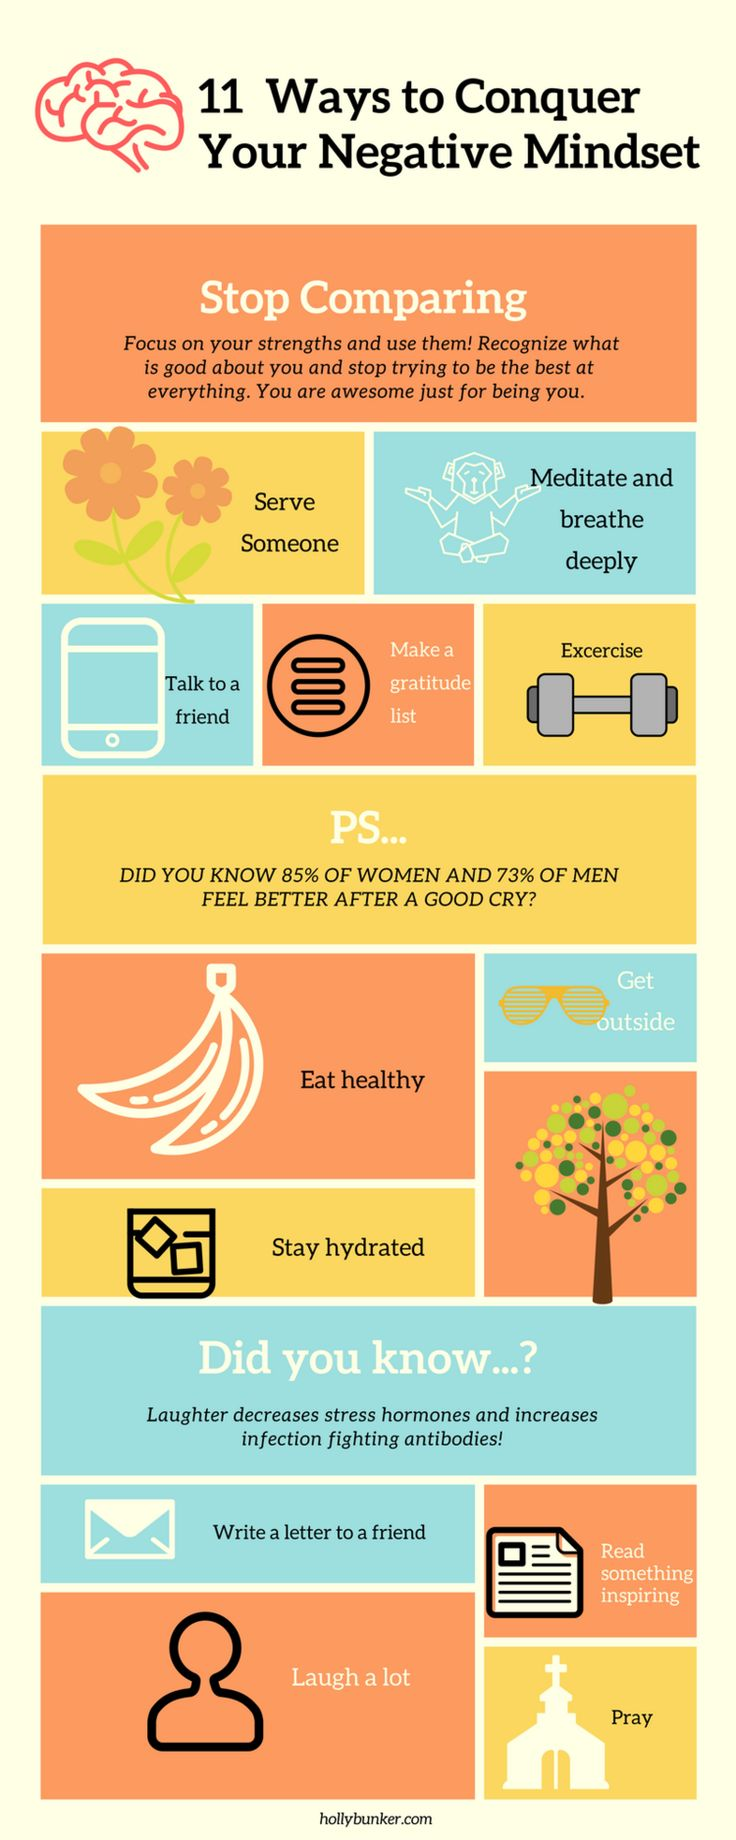 If you enjoyed this post, share it! And feel free to download this infographic to help motivate you on your journey to a positive attitude!